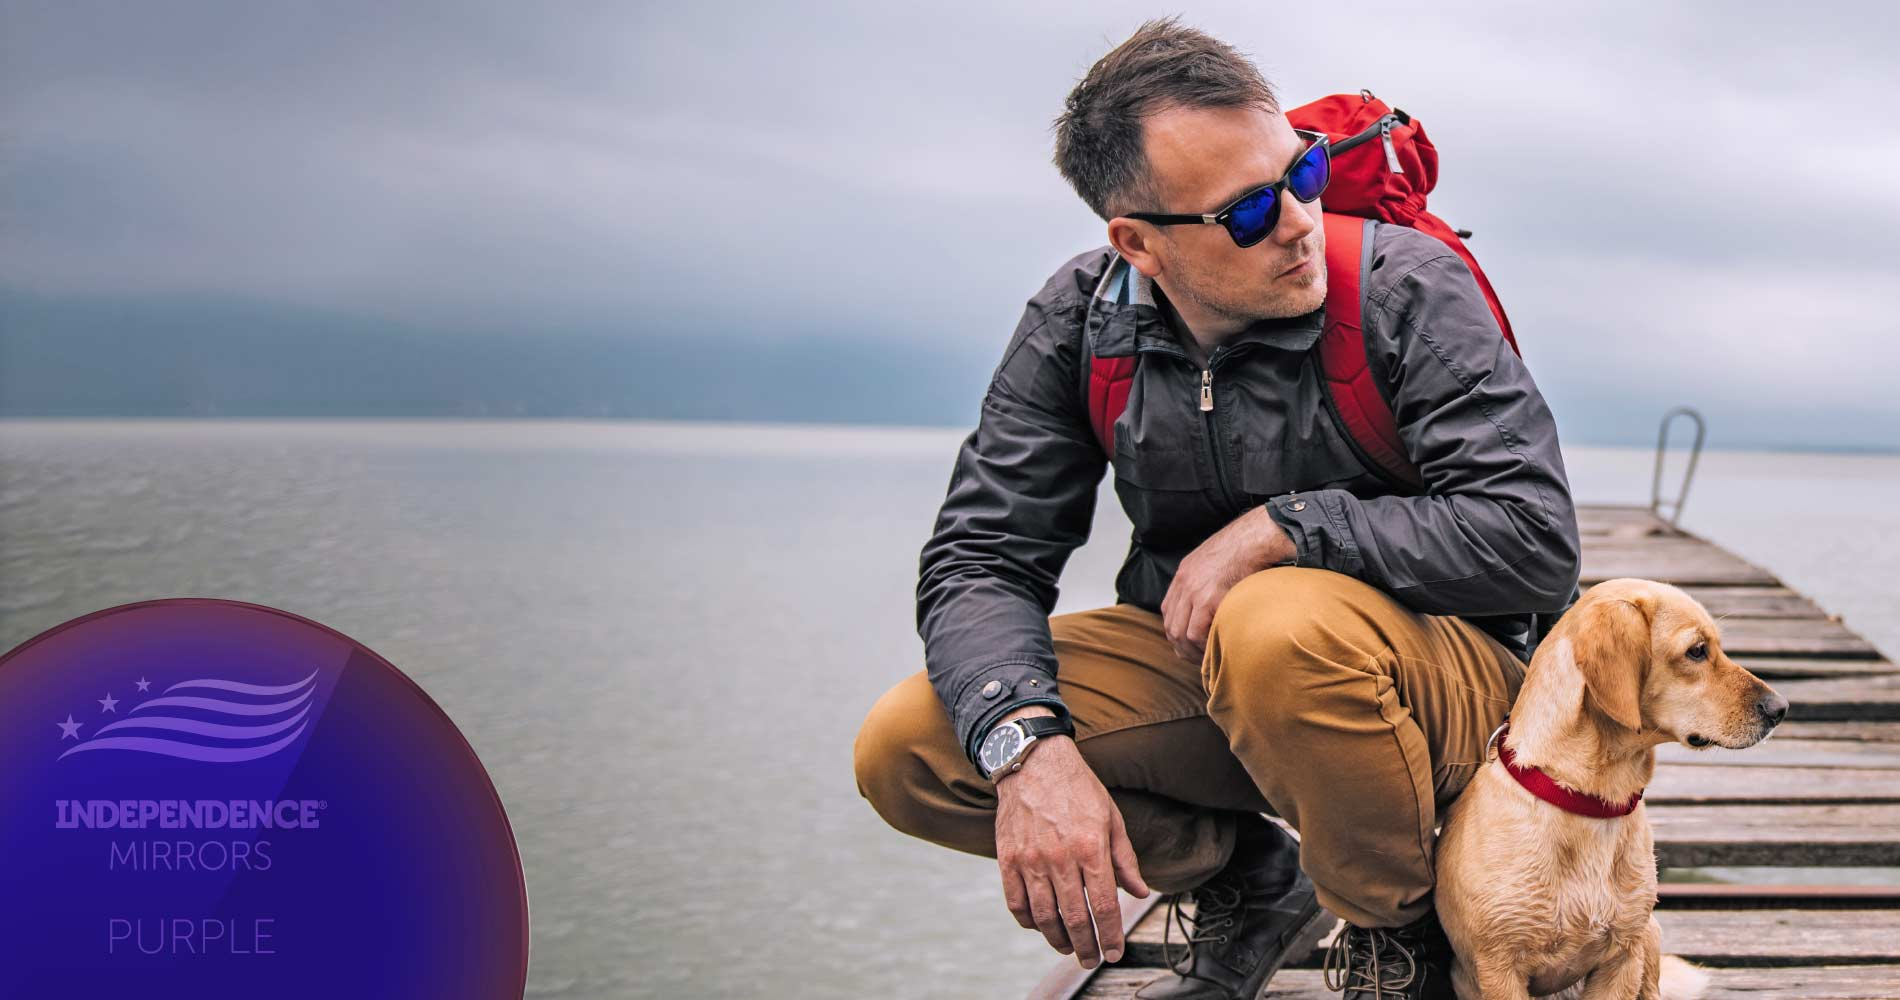 Man with hiking gear crouched down on a pier with a dog, wearing purple-colored mirrored sunglasses